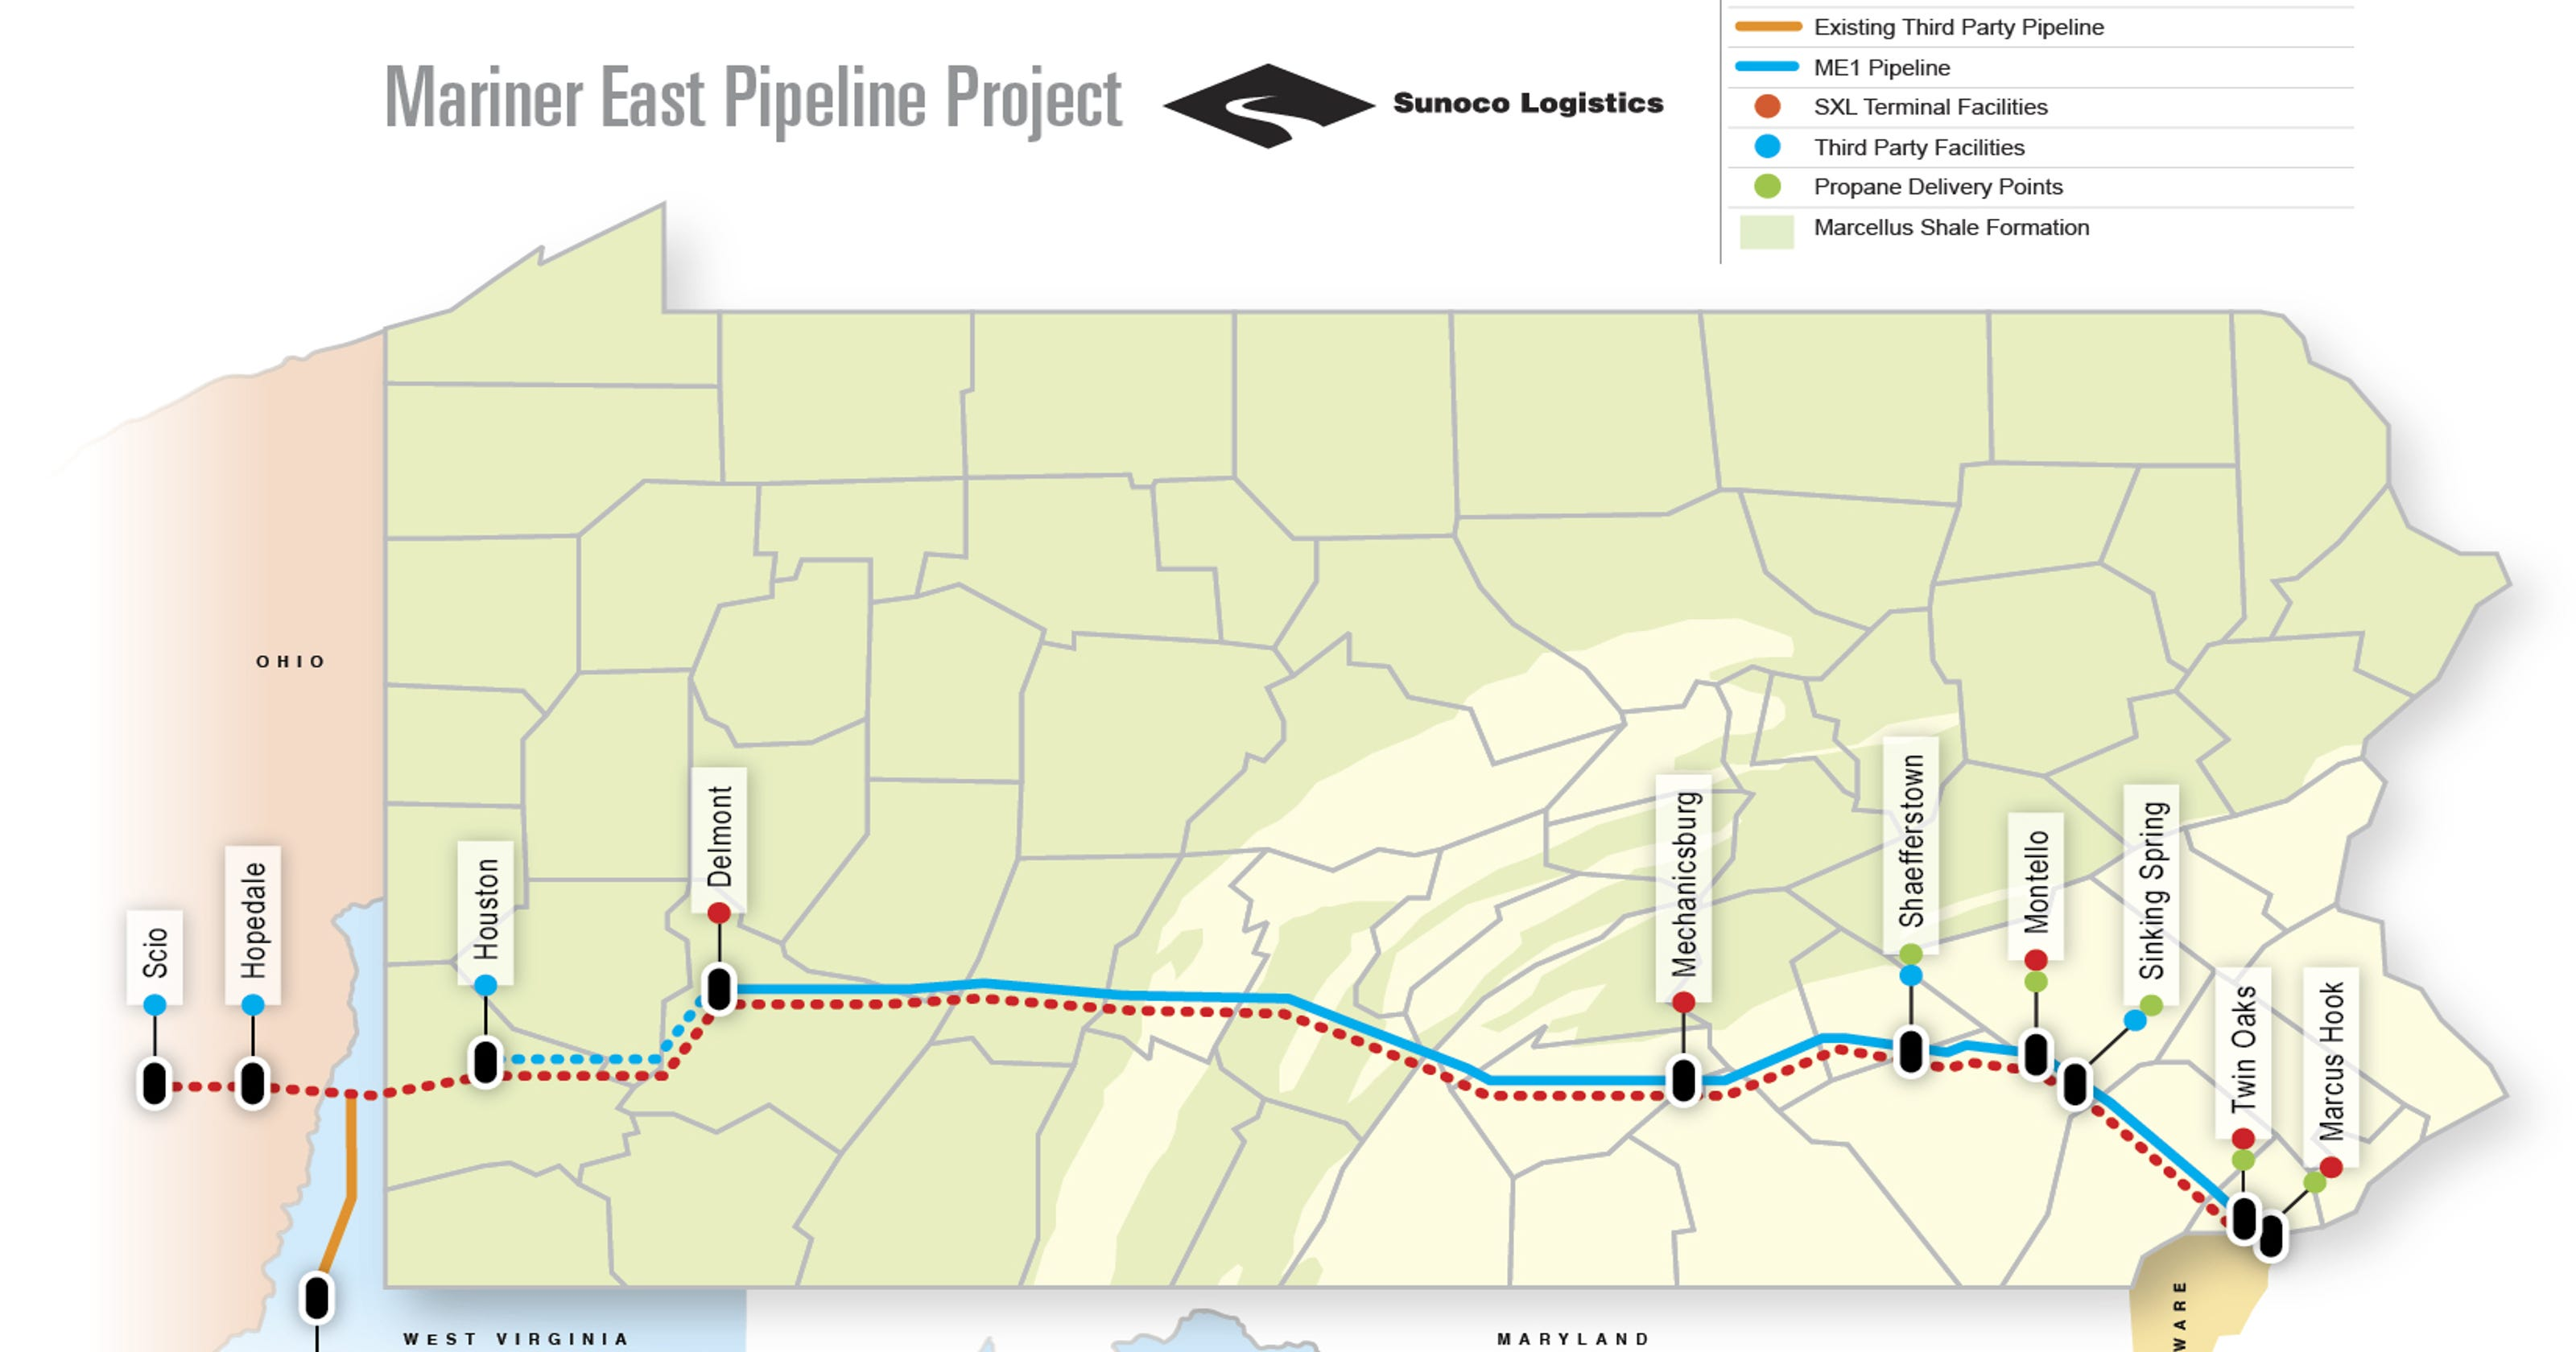 Pennsylvania And Ohio Map.Two Pipelines In Pennsylvania Ohio Rack Up More Than 800 Violations